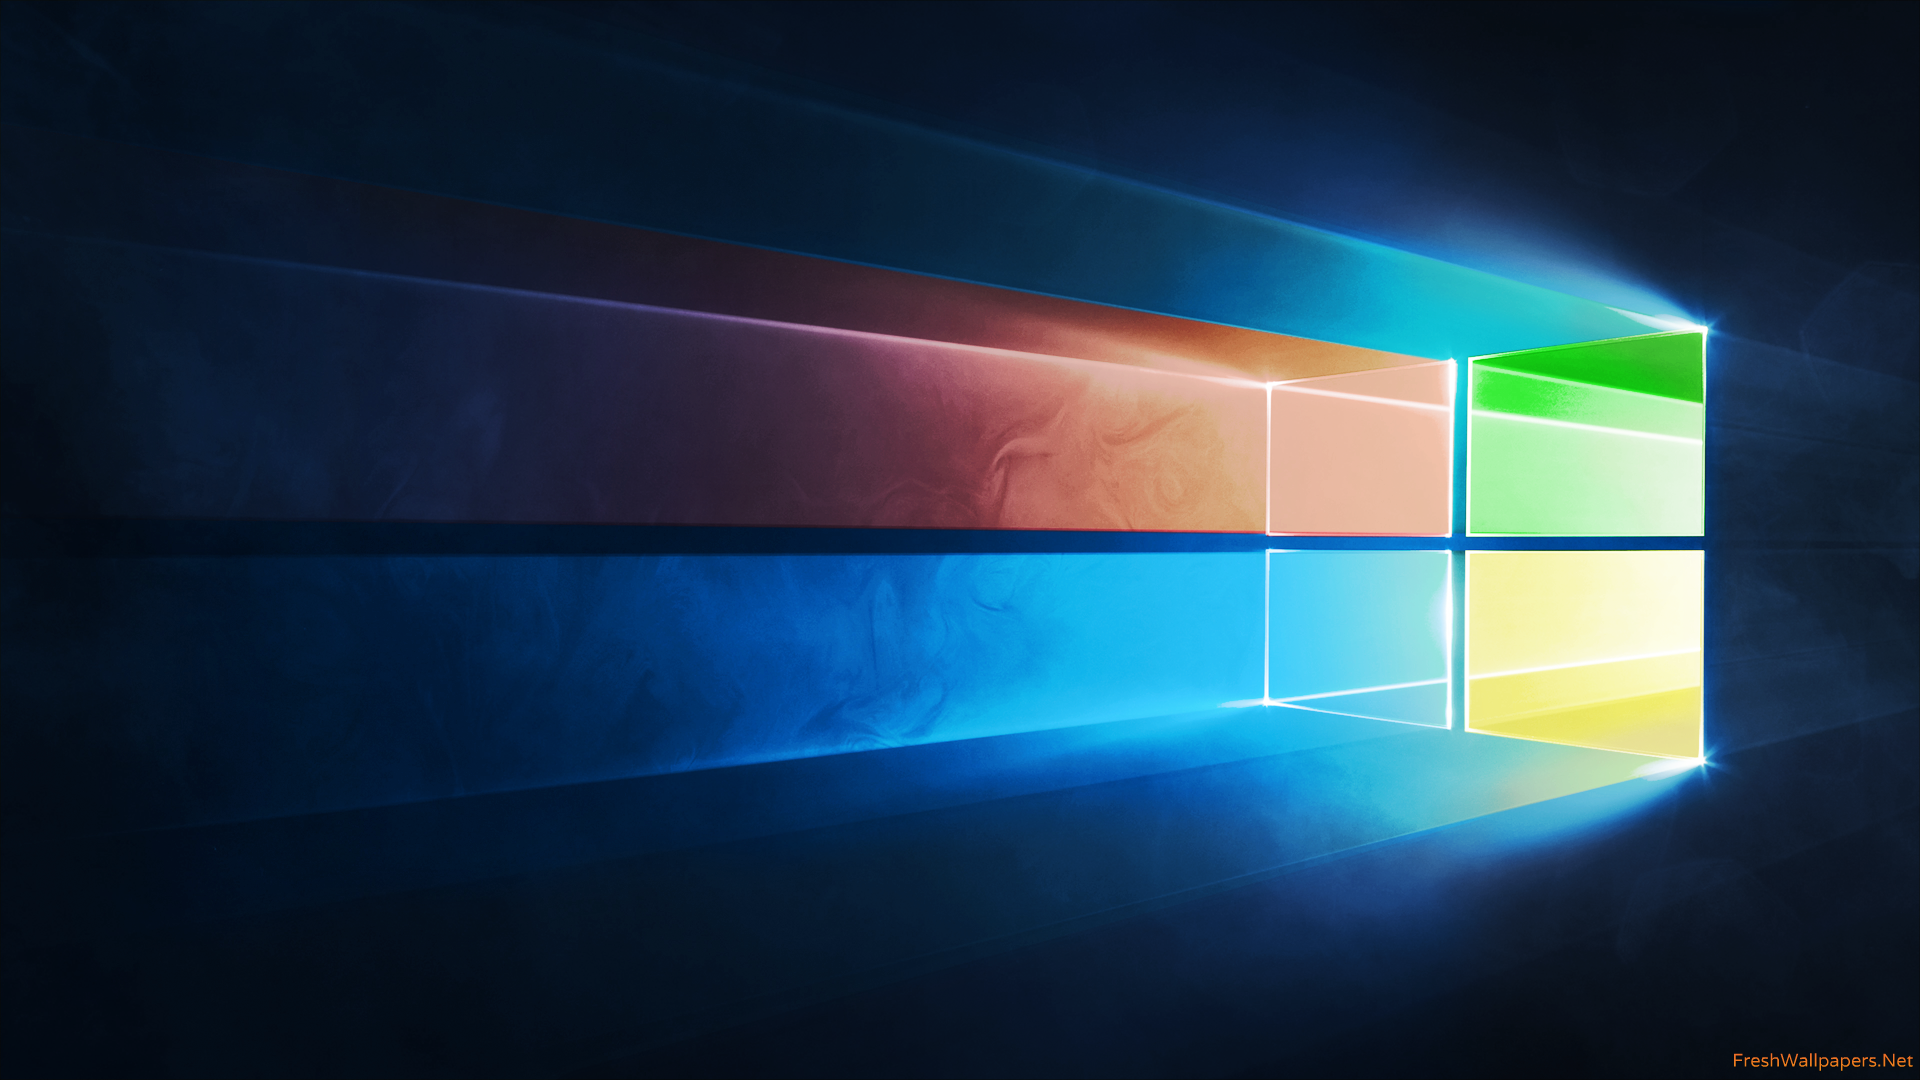 Windows 10 Official in Four Colors wallpaper 1080p